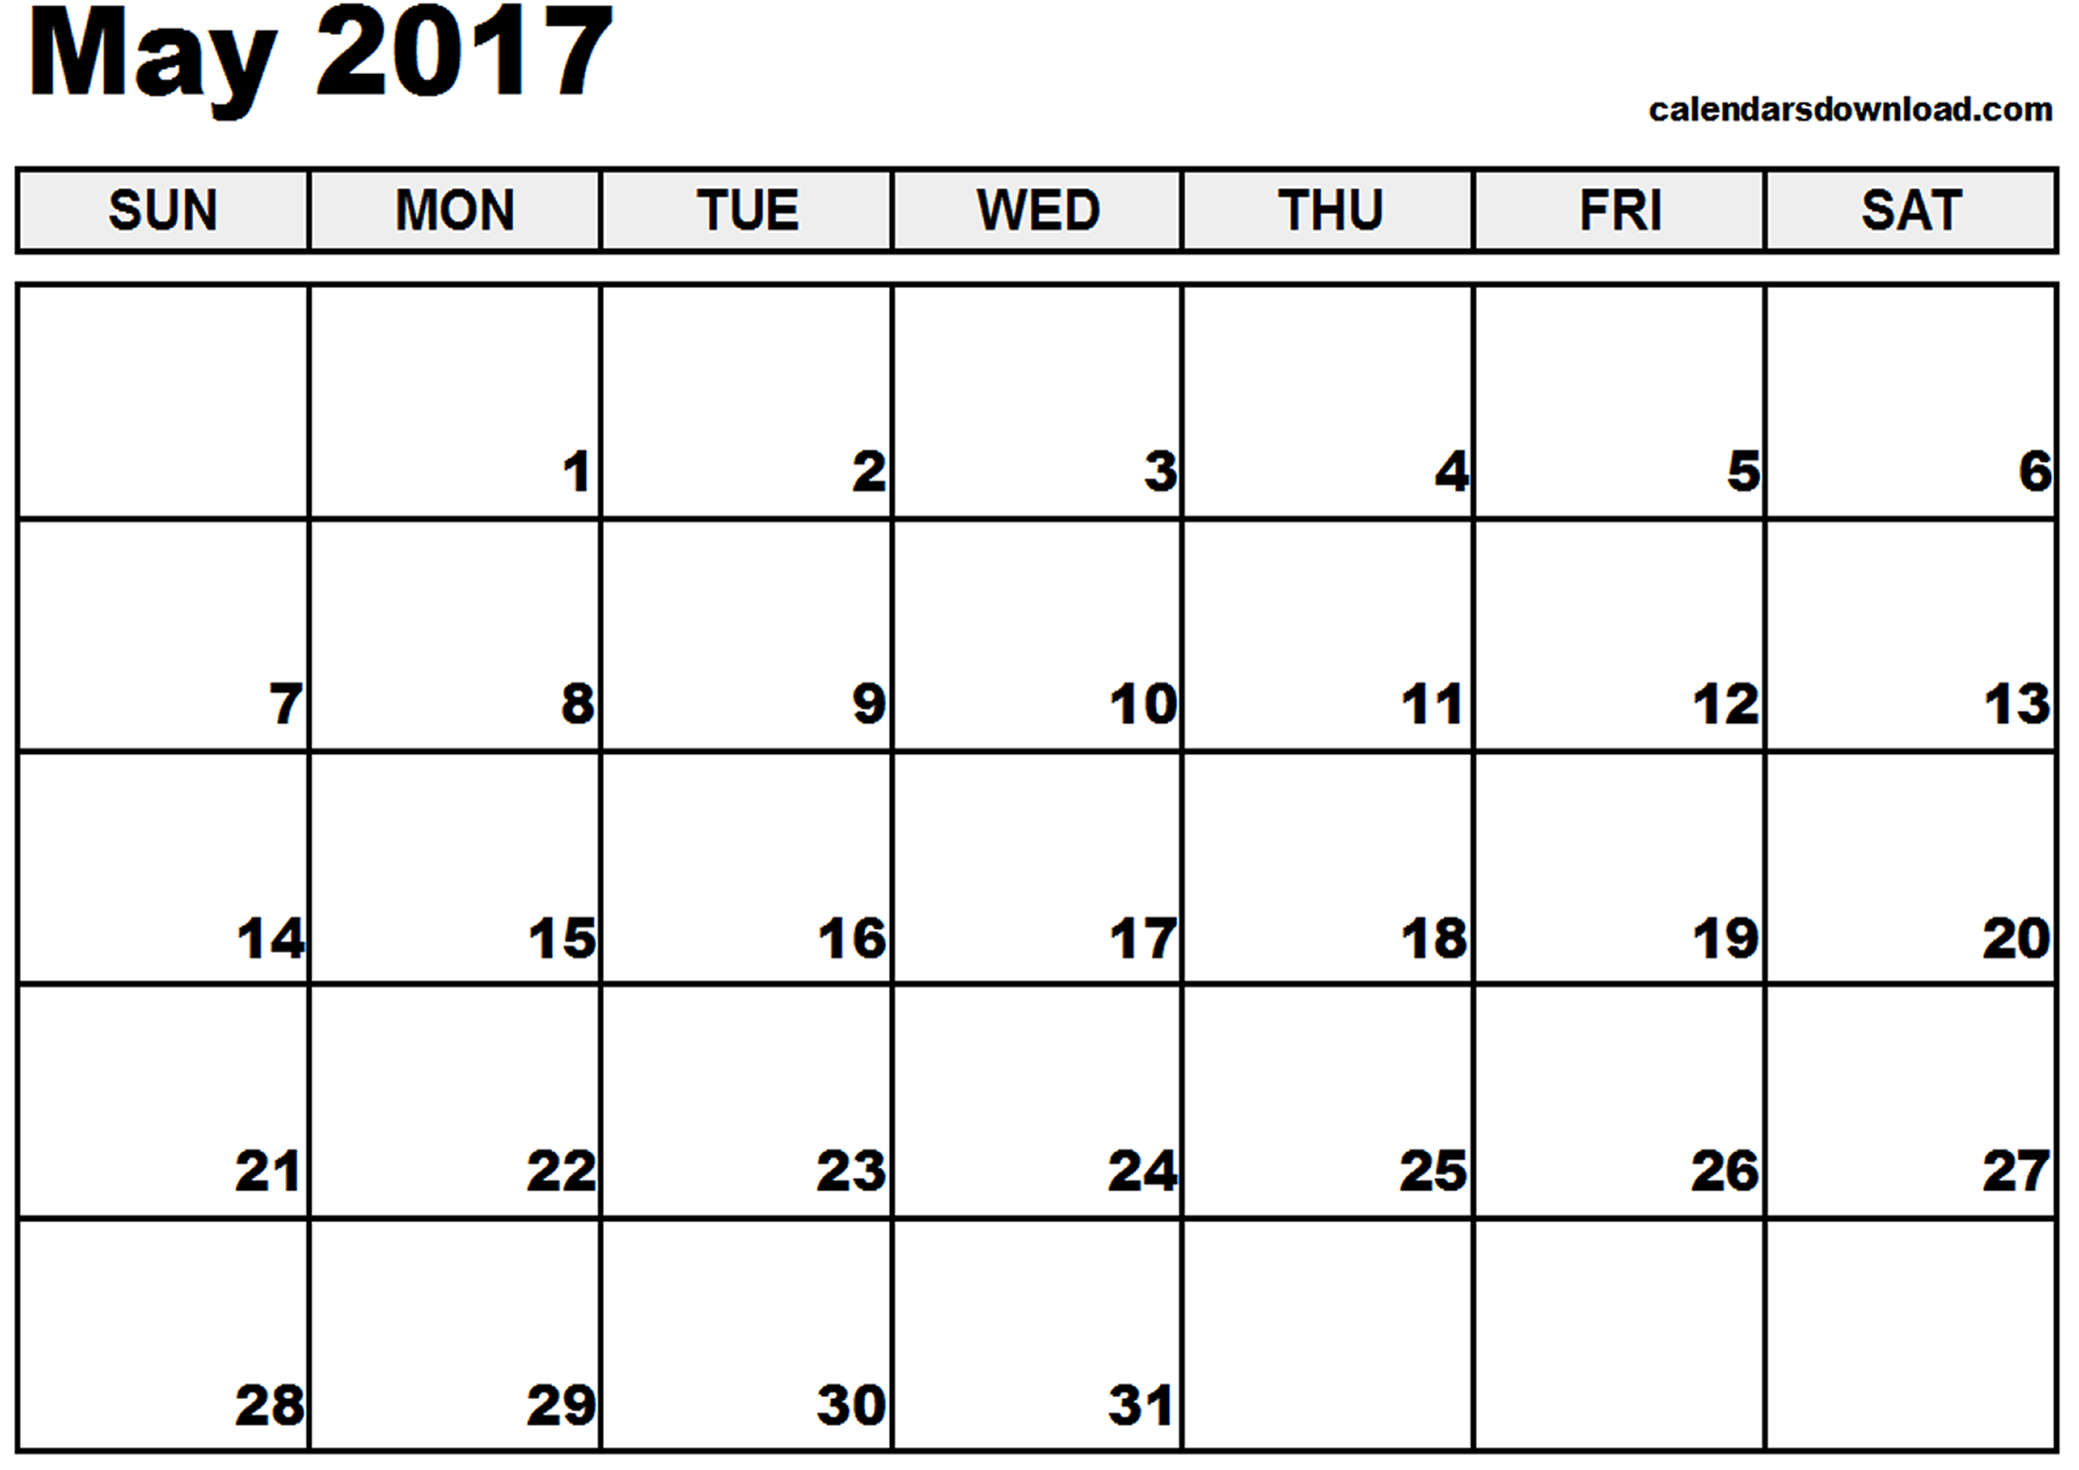 Free May 2017 Calendar (With US Holidays) – Printable Calendar